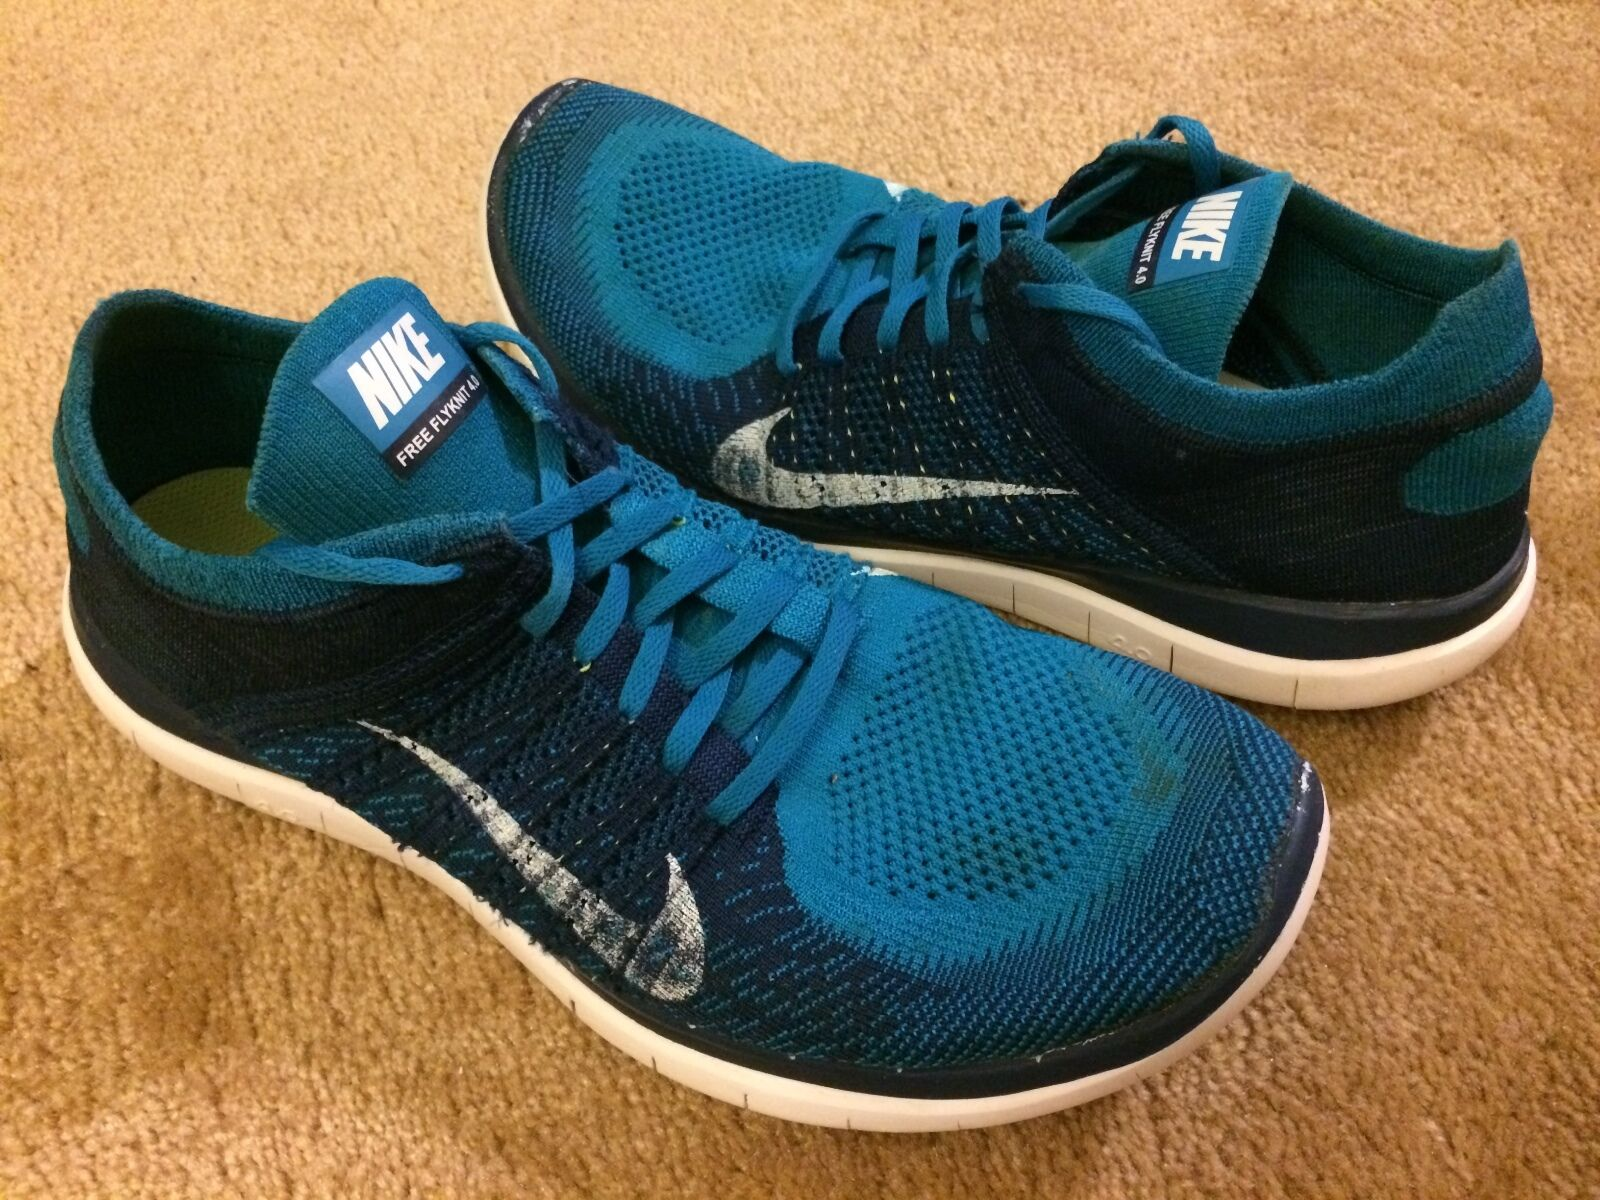 1ac199a2142 Men's Nike Nike Nike Free 4.0 Flyknit Running Shoes Turquoise Blue Size 14  (631053-